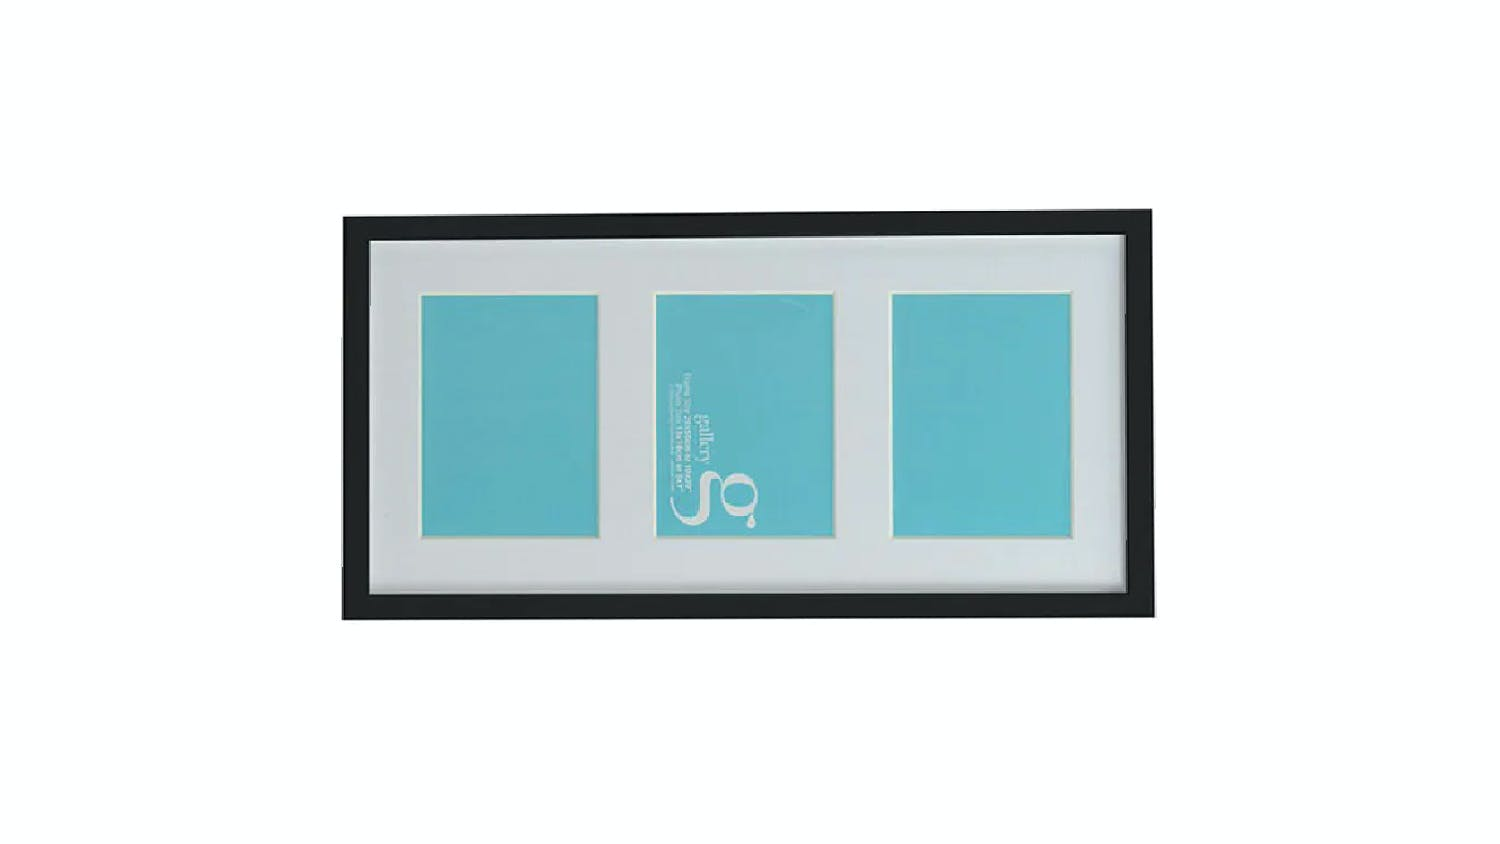 UR1 Gallery 10x20 Photo Frame with 3 5x7 Openings - Black